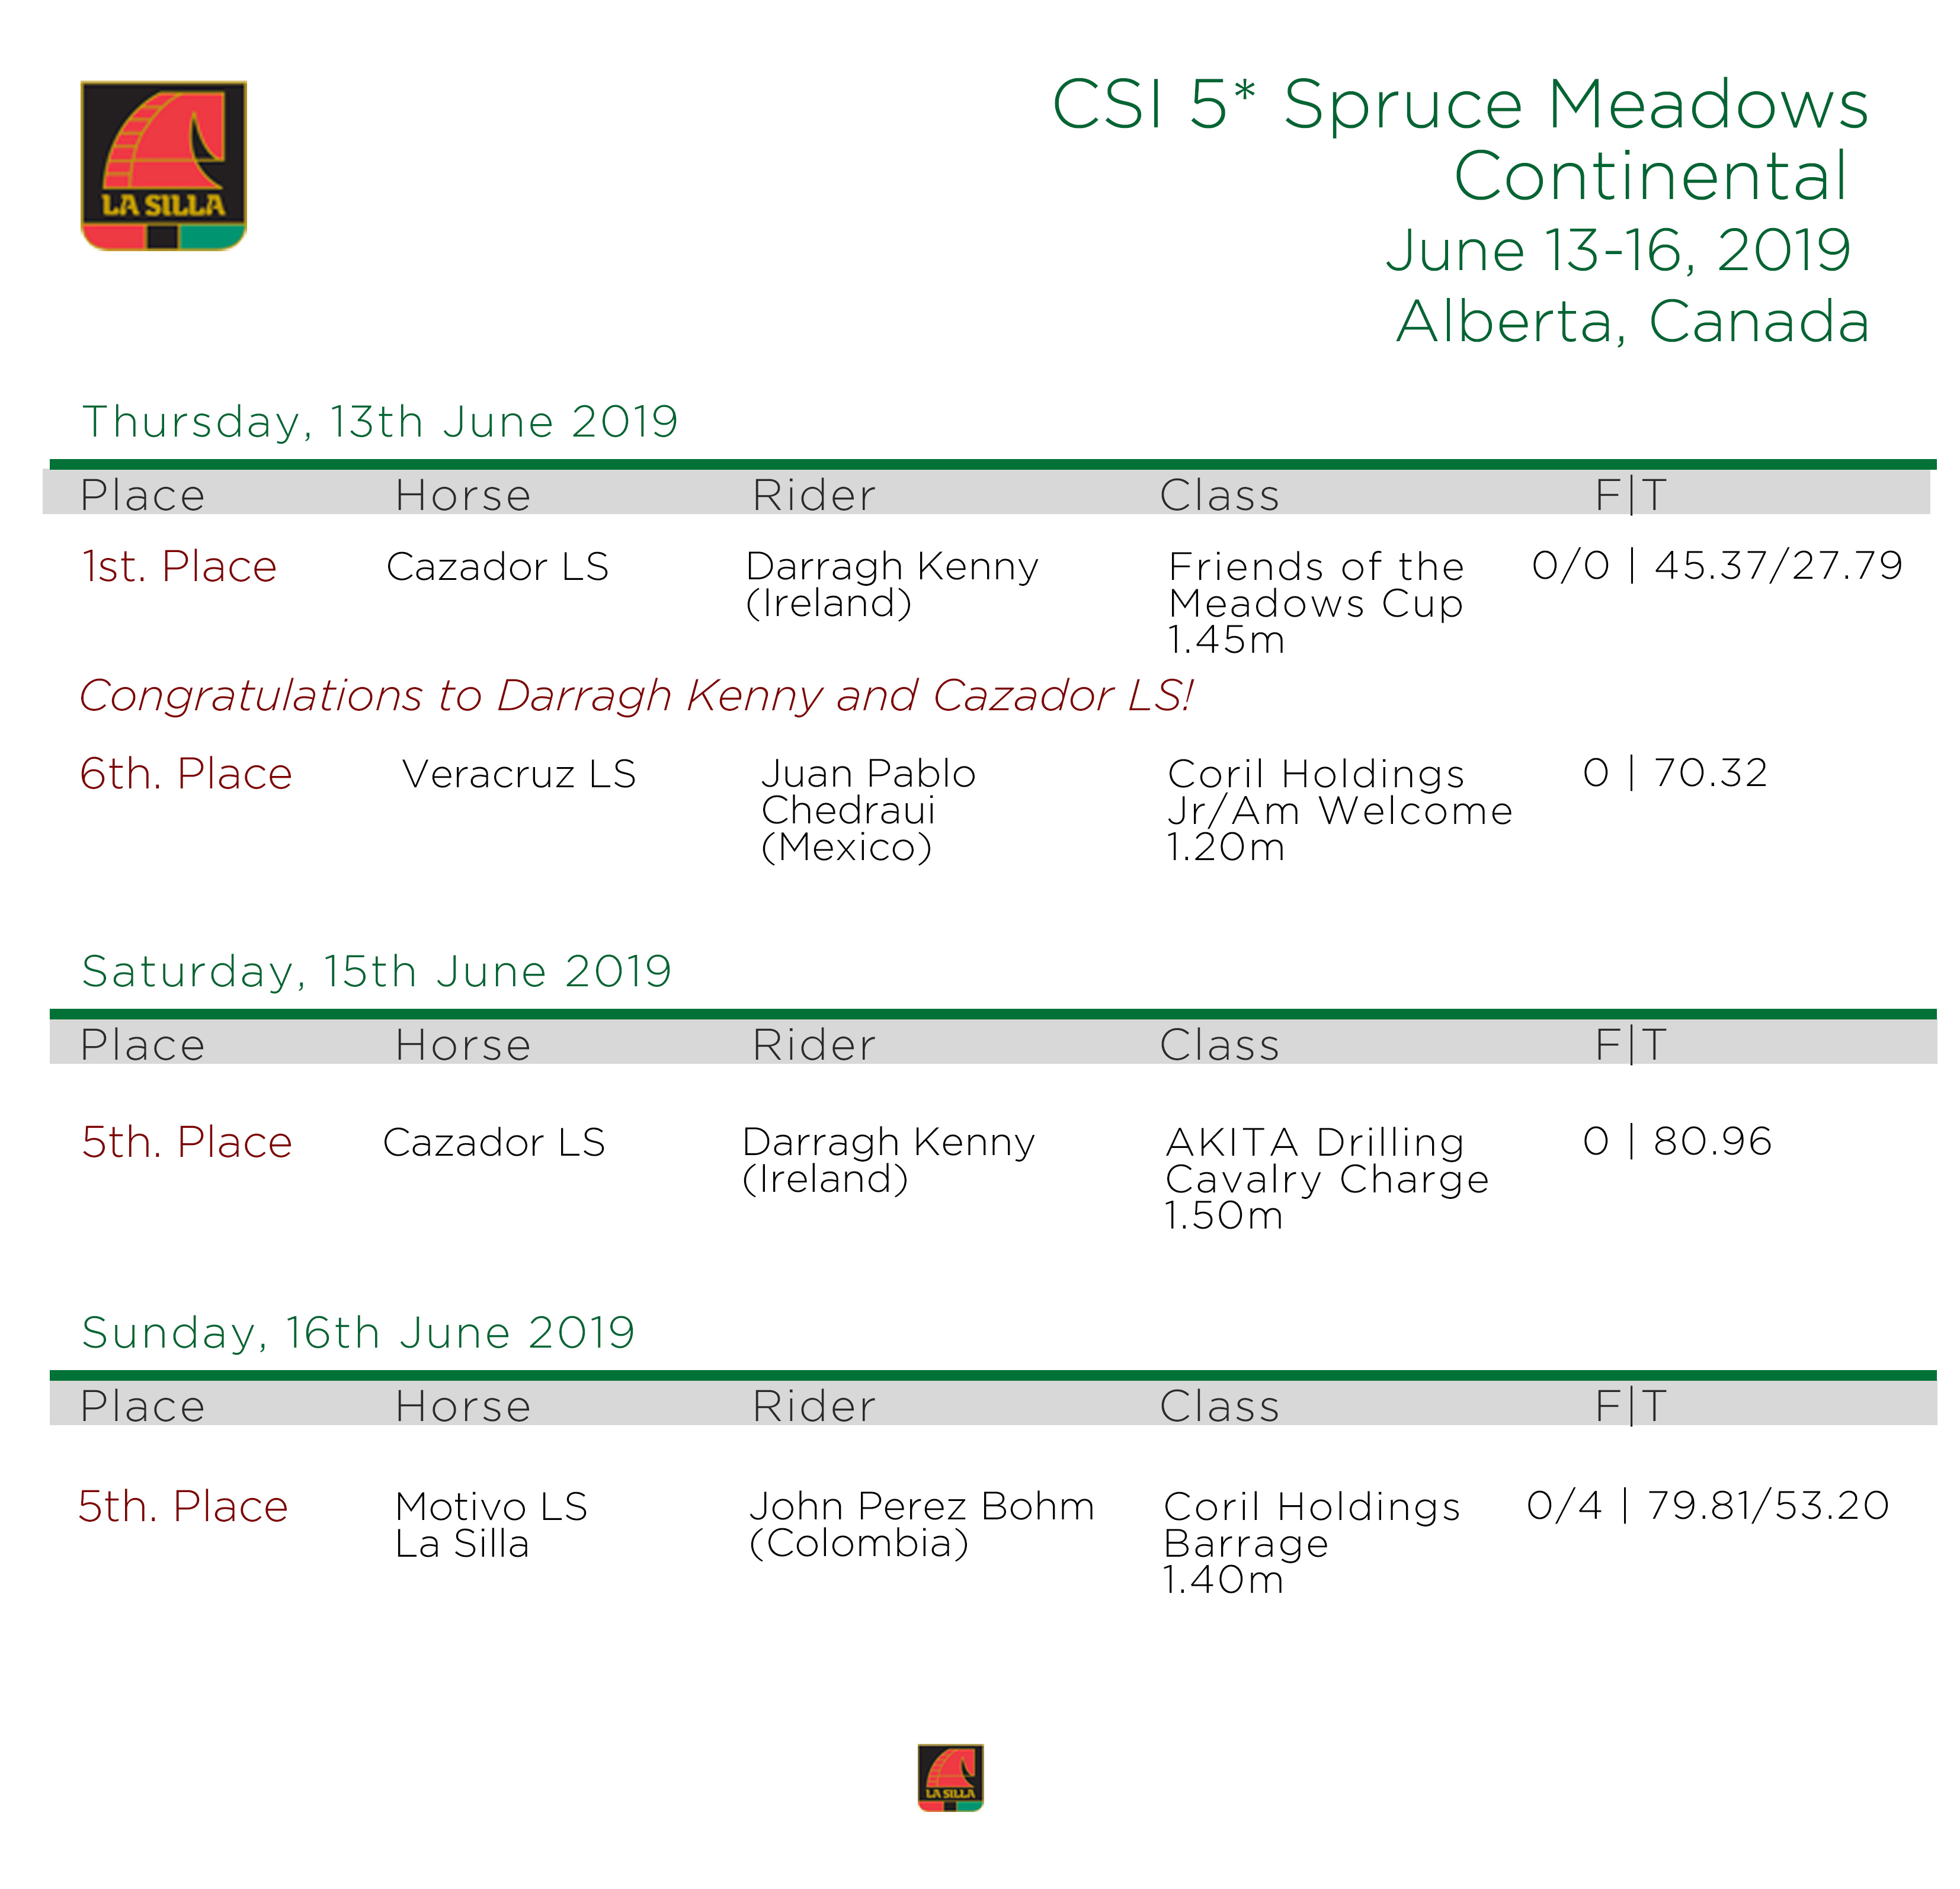 CSI-5--Spruce-Meadows-Continental-June-13-16_2019-new